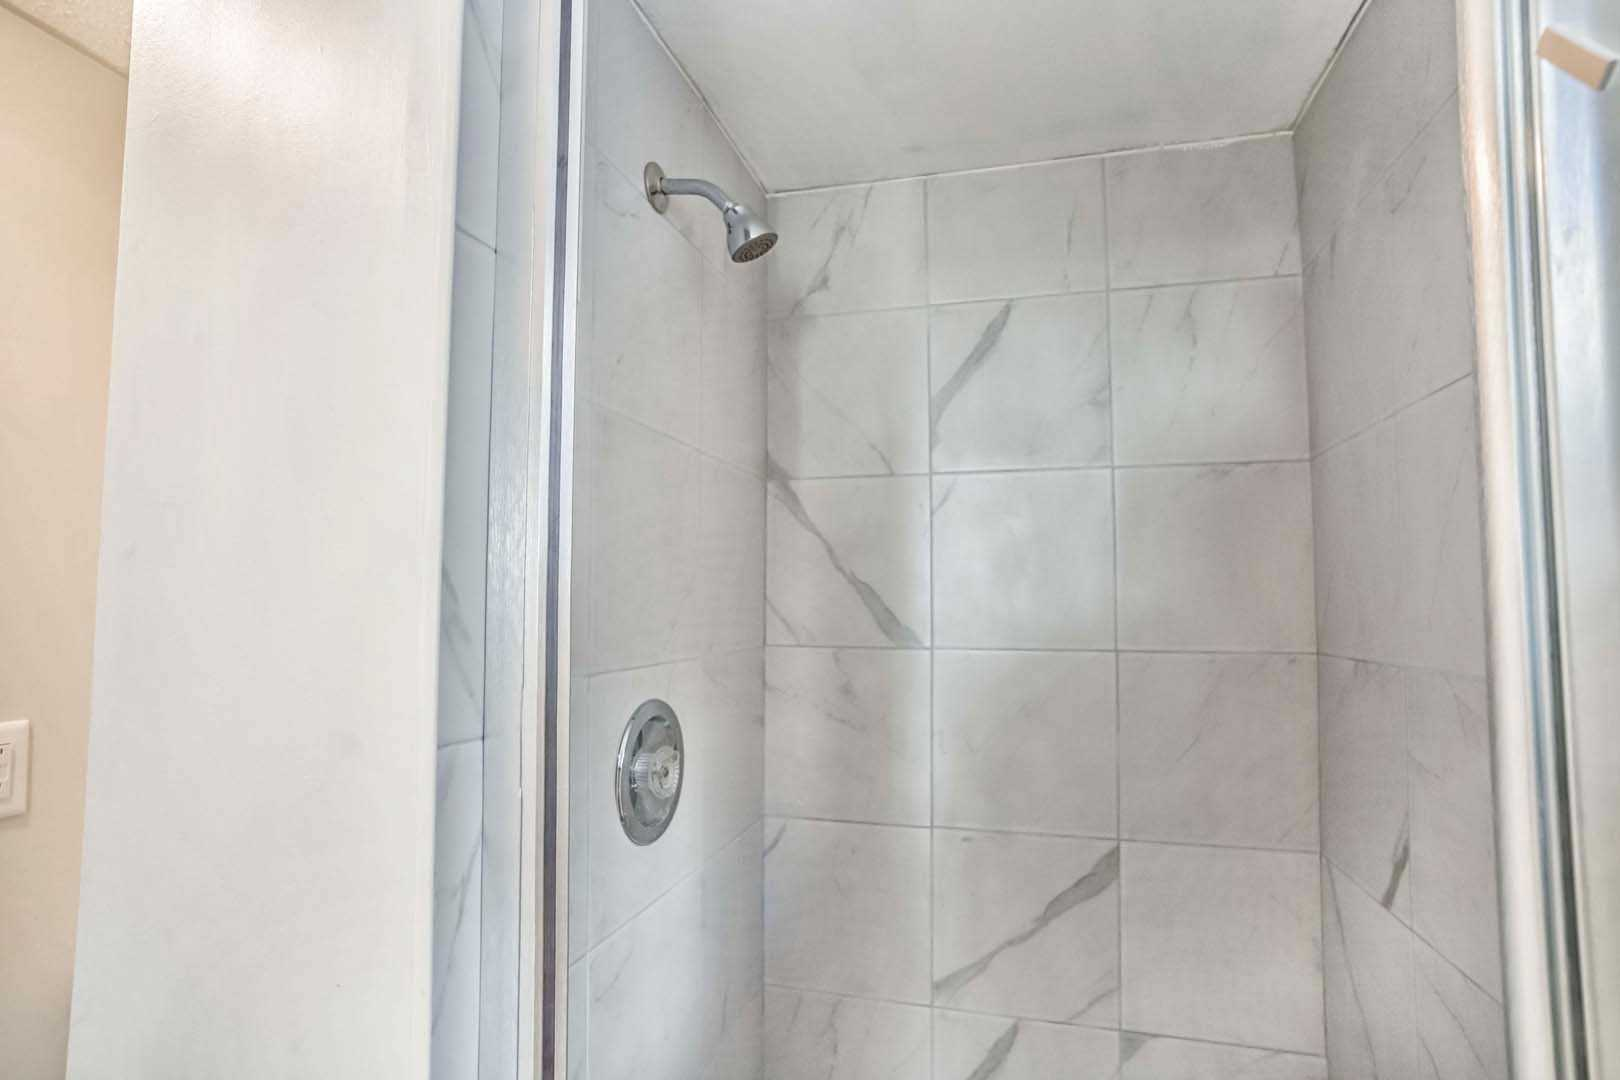 Detached house For Lease In Mississauga - 7 Queen St, Mississauga, Ontario, Canada L5M1K2 , 2 Bedrooms Bedrooms, ,2 BathroomsBathrooms,Detached,For Lease,Queen